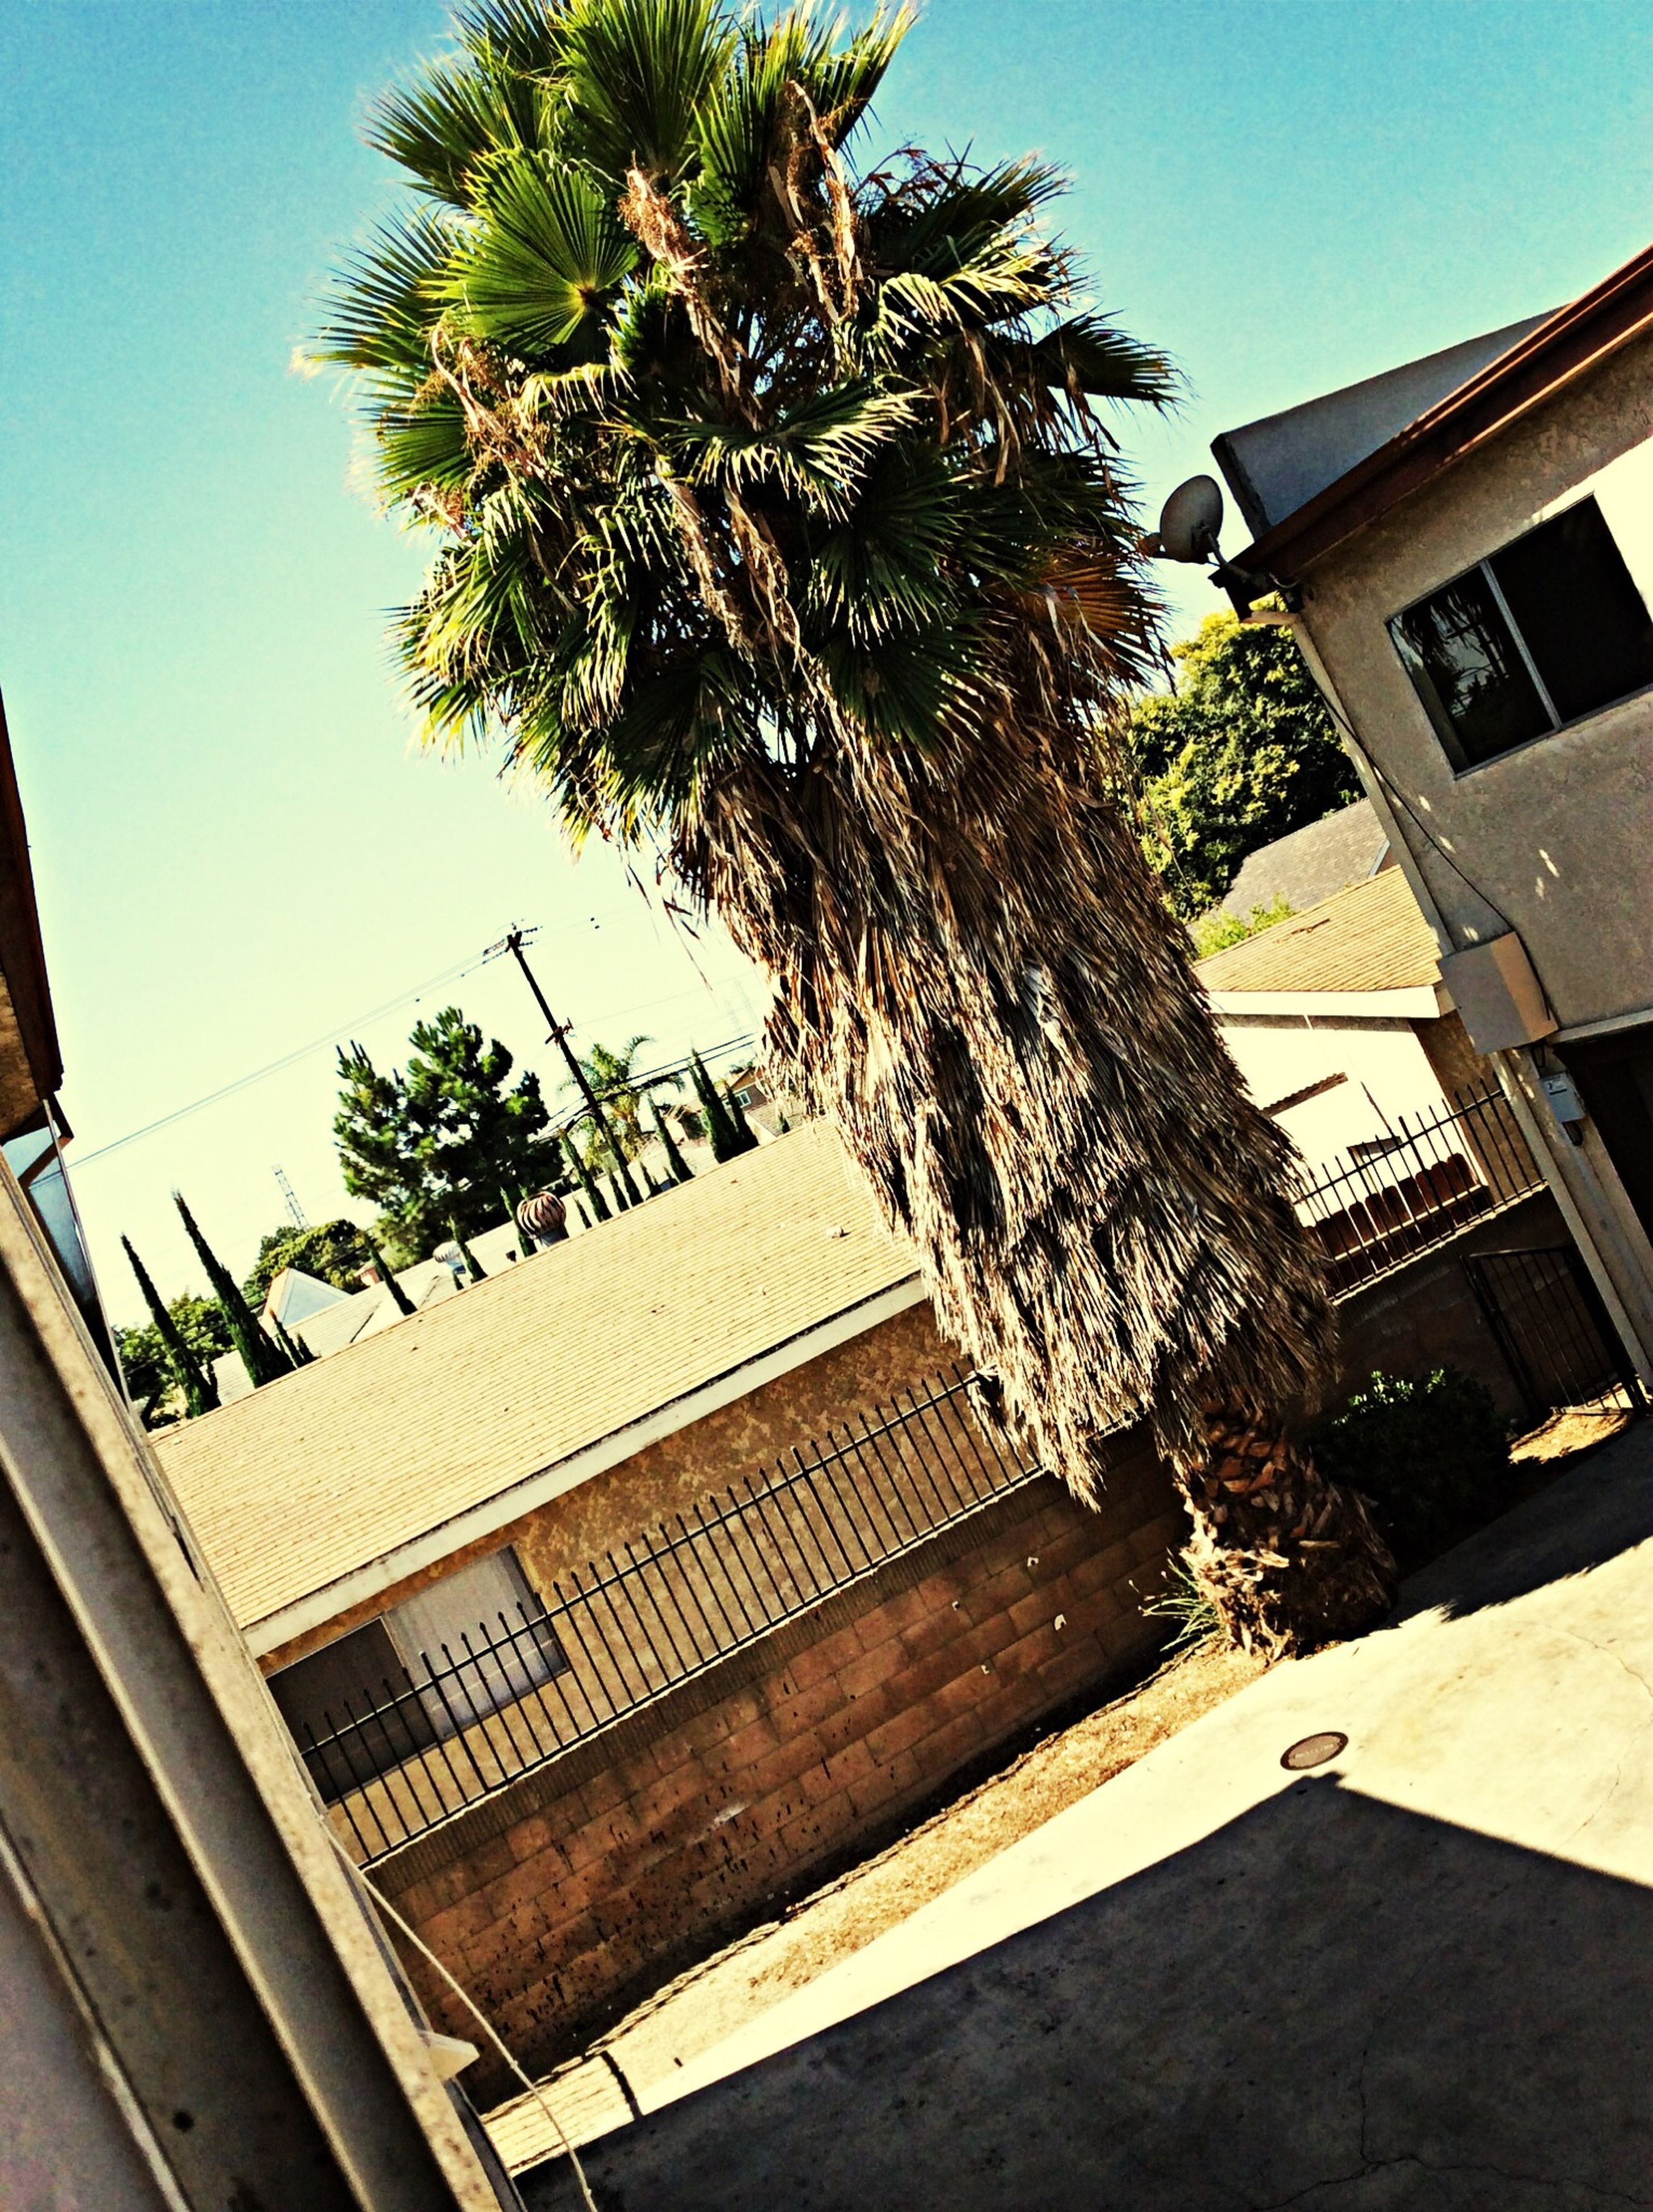 building exterior, architecture, built structure, low angle view, clear sky, tree, window, residential building, residential structure, building, house, sunlight, sky, shadow, palm tree, day, outdoors, balcony, growth, blue